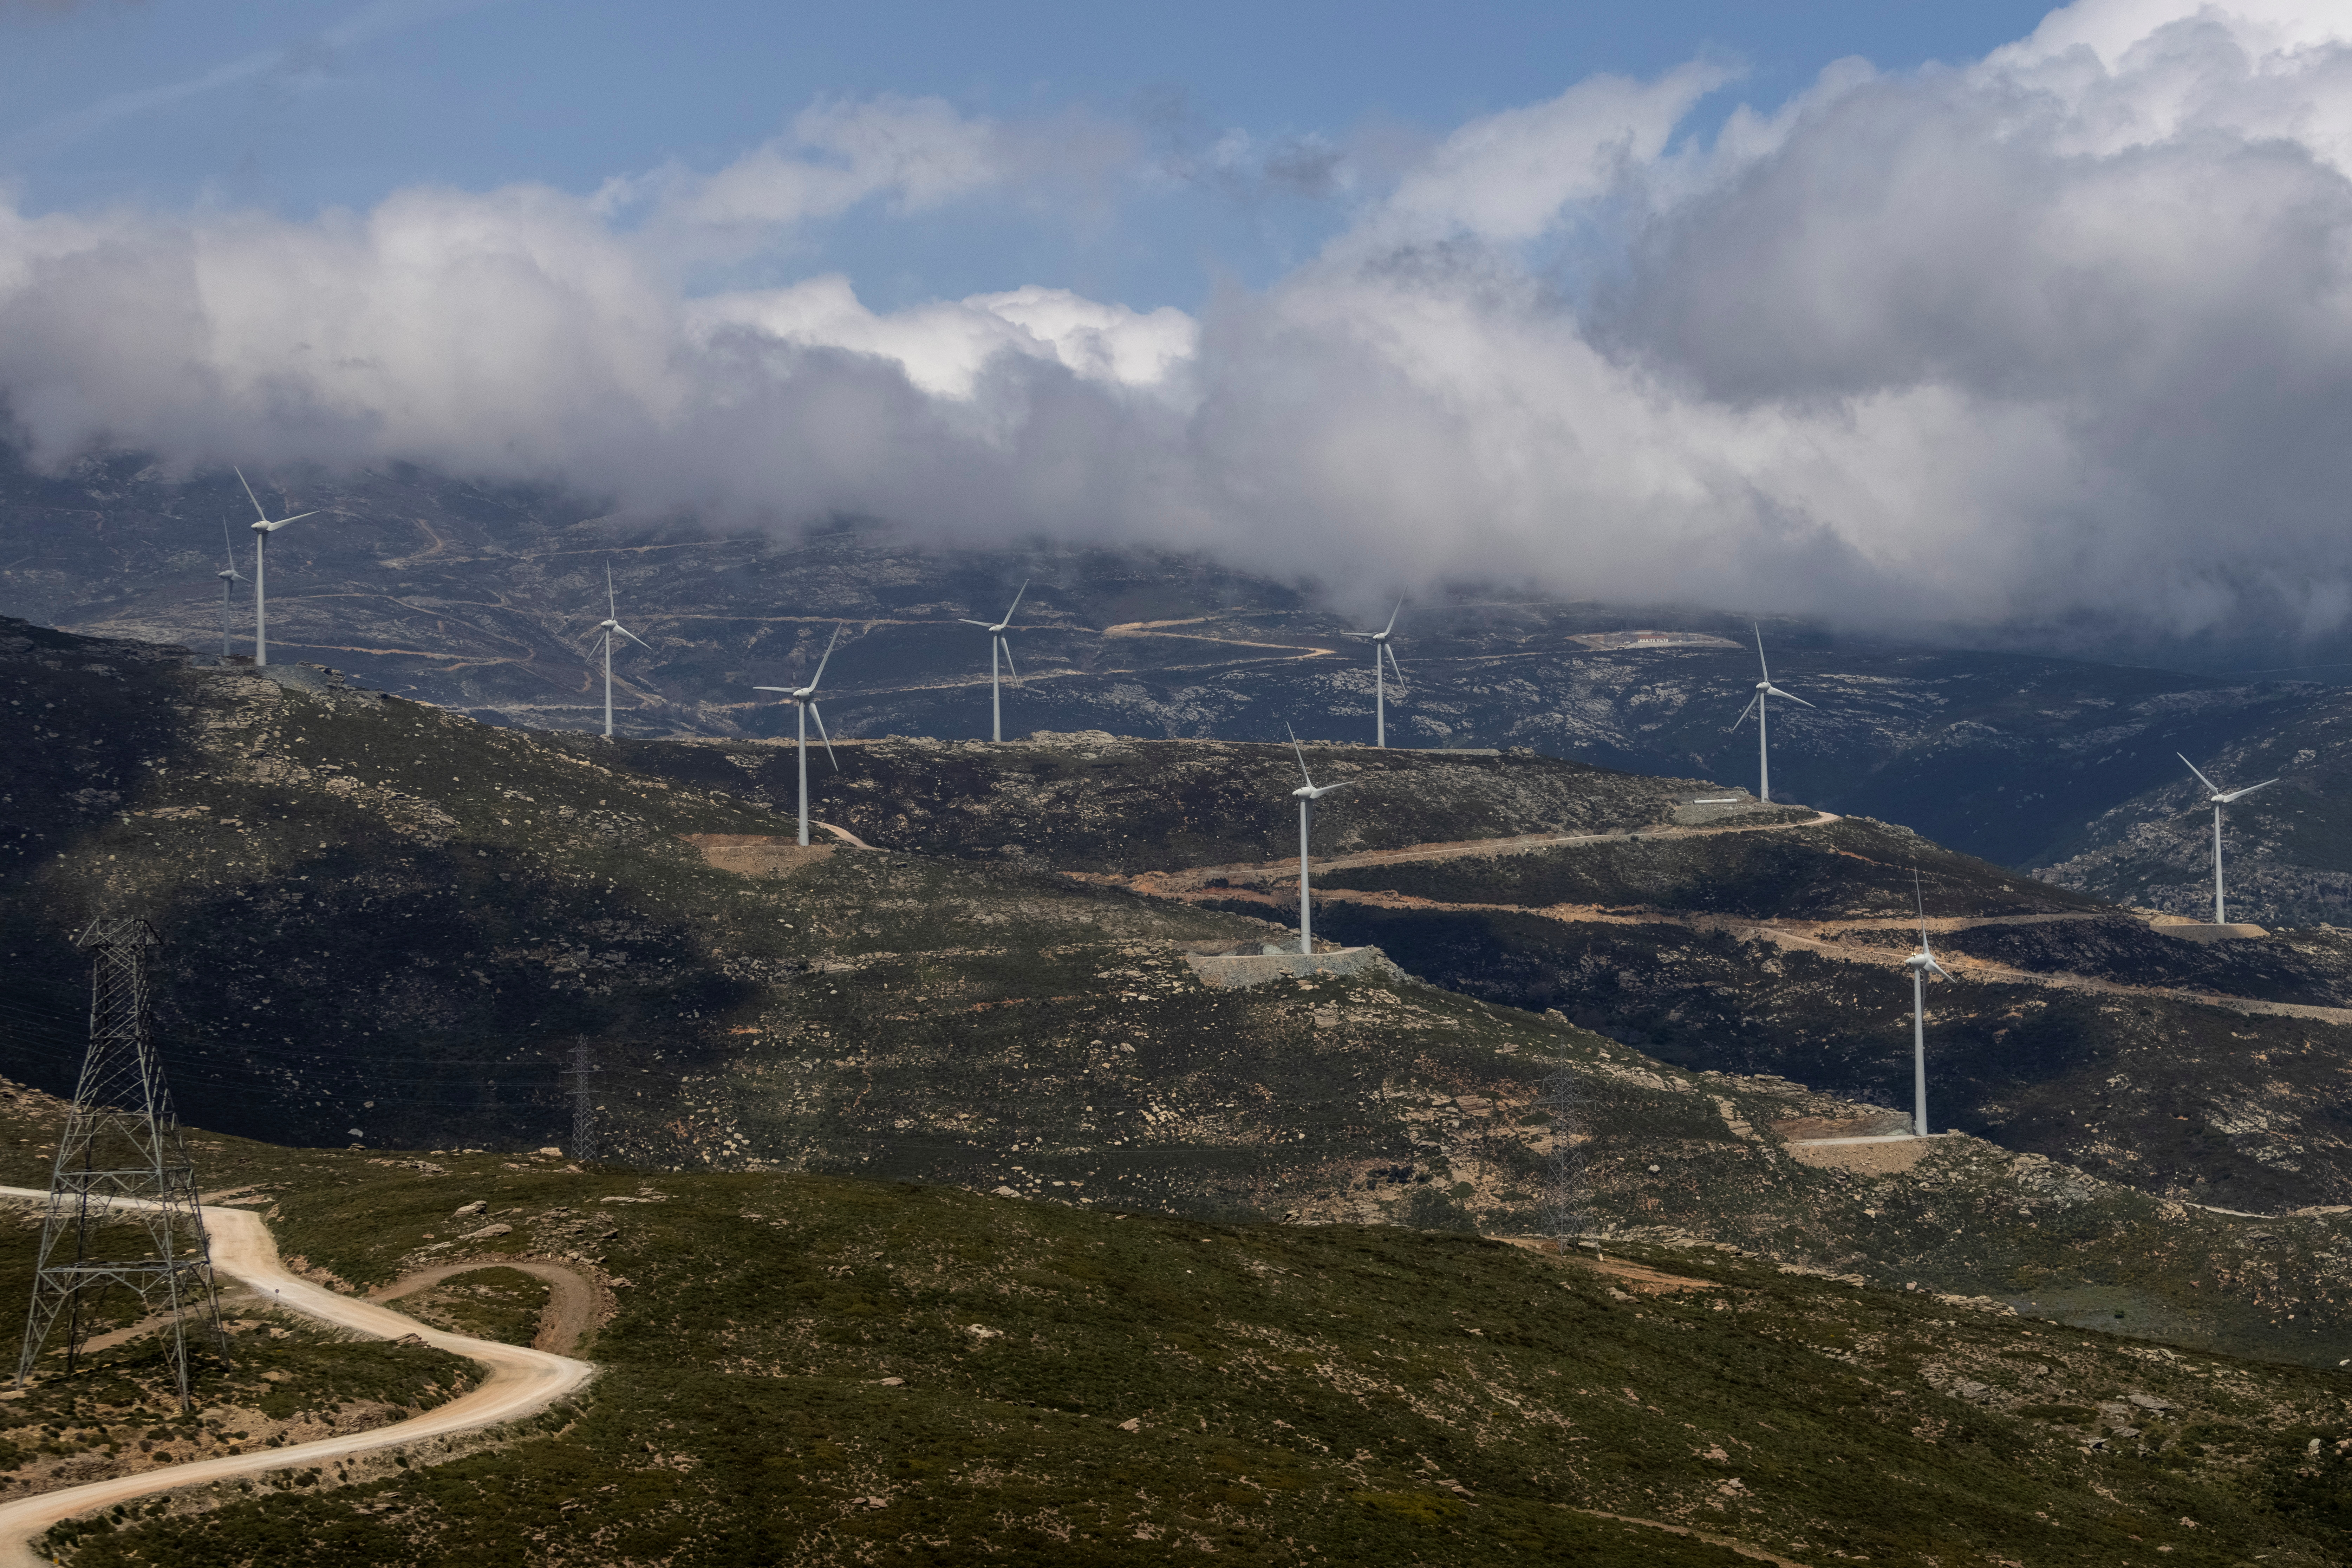 Wind turbines are seen on a mountain on the island of Evia, Greece, April 16, 2021. Picture taken April 16, 2021. REUTERS/Alkis Konstantinidis